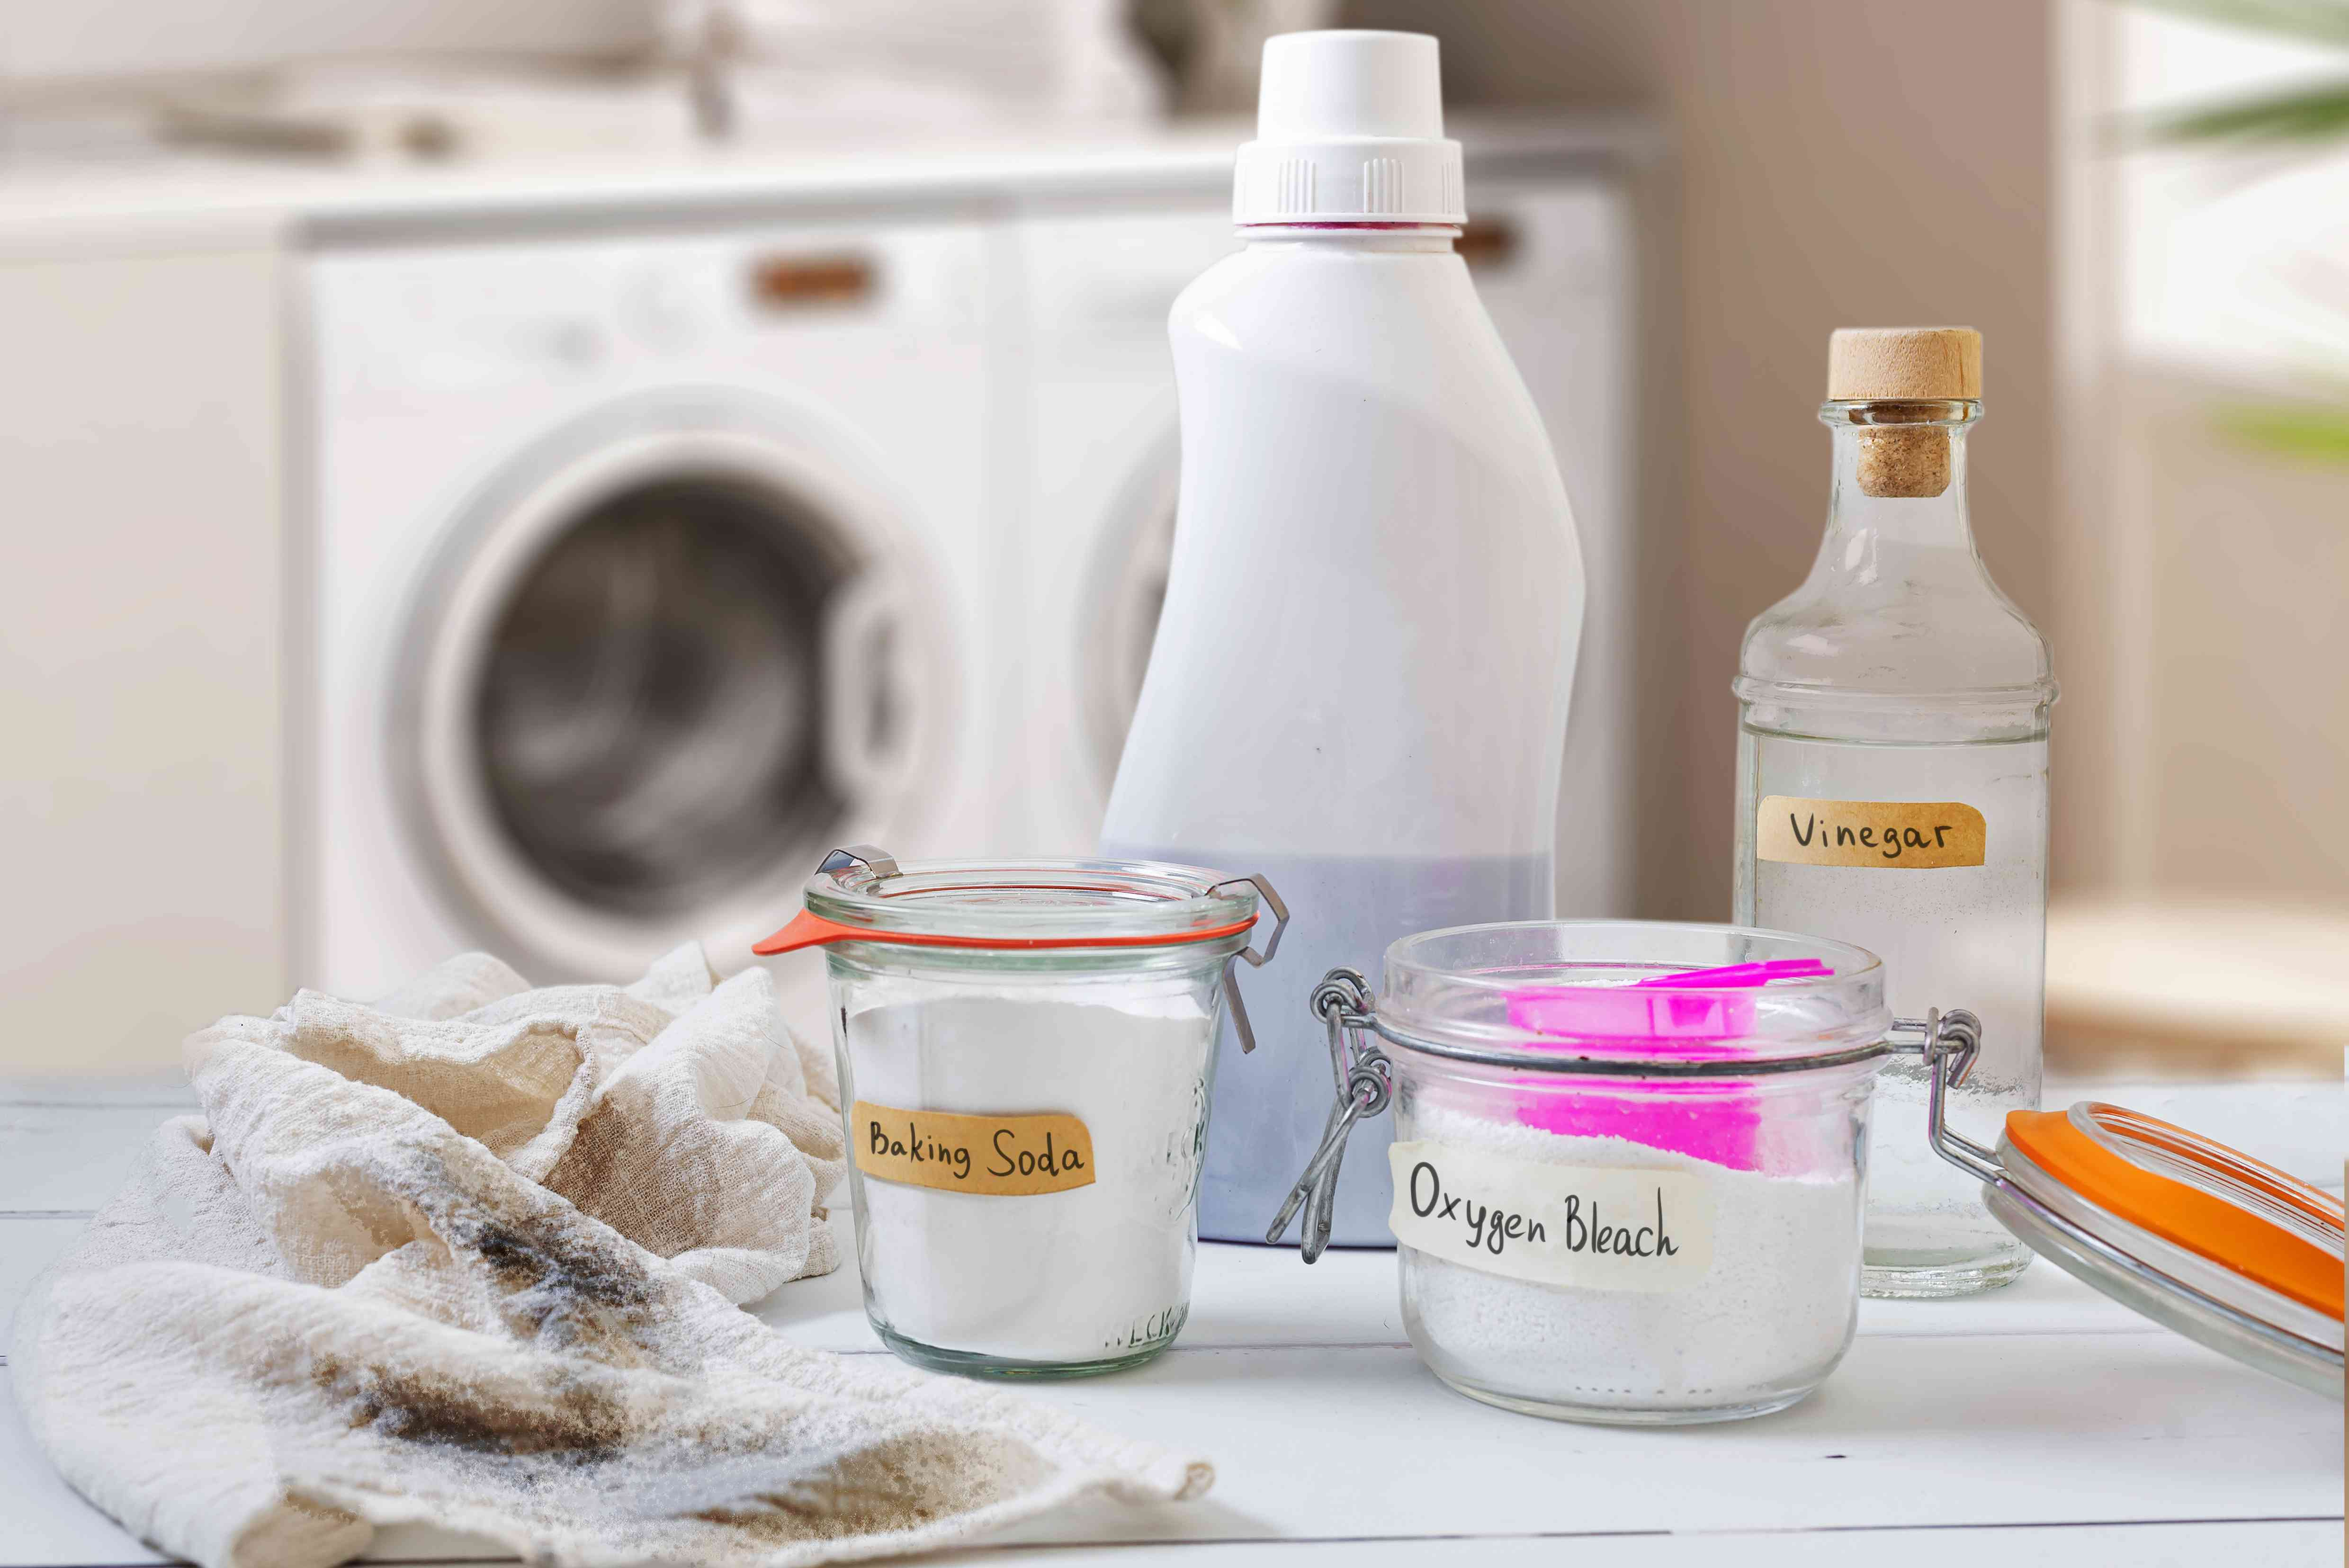 items for removing soot stains from washable clothing